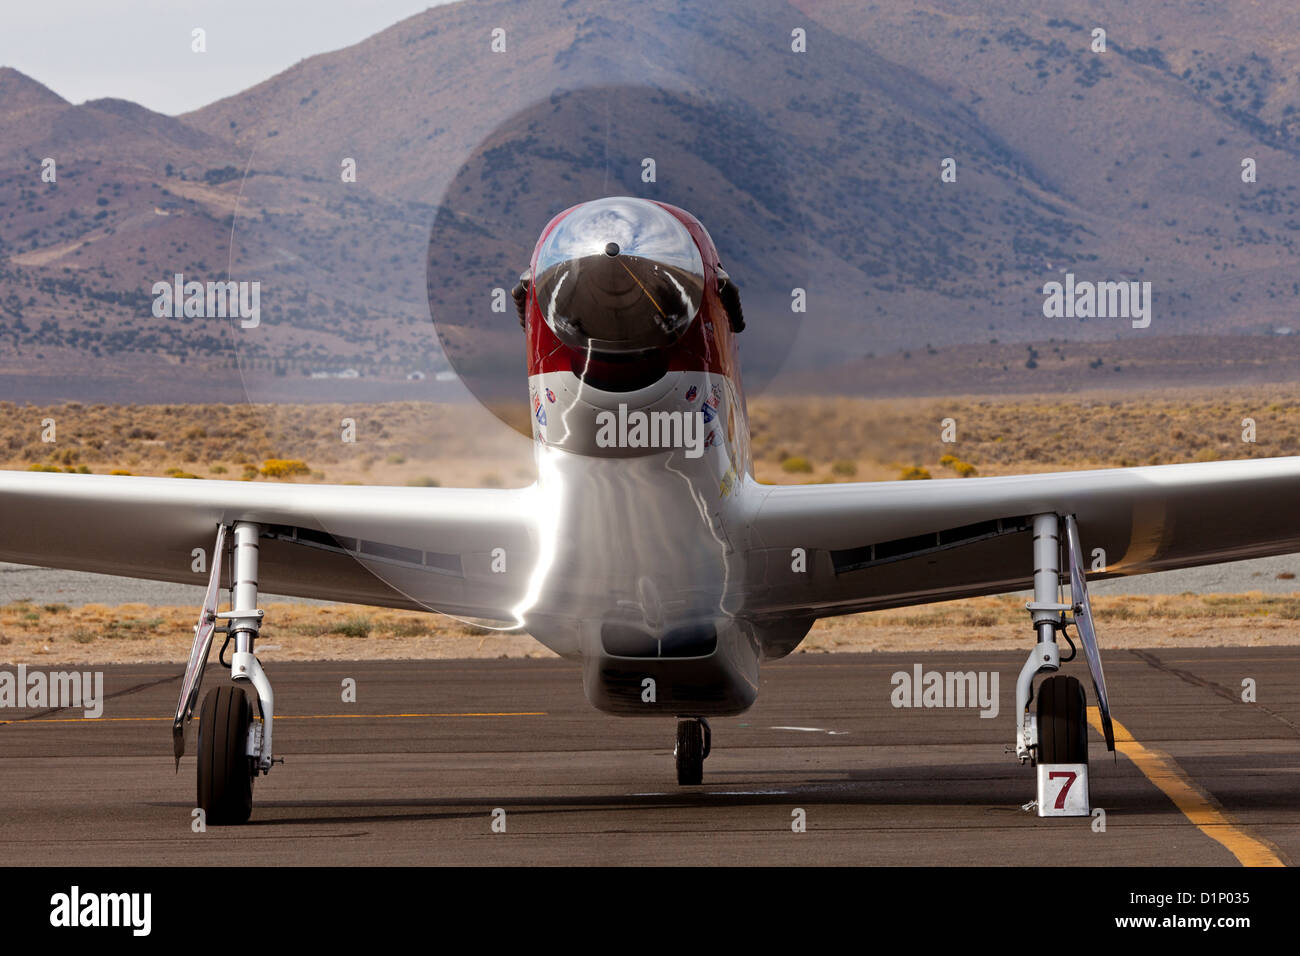 P-51 Mustang Air Racer 'Strega' runs up the RPM's after a heat race at the 2012 Reno National Championship - Stock Image